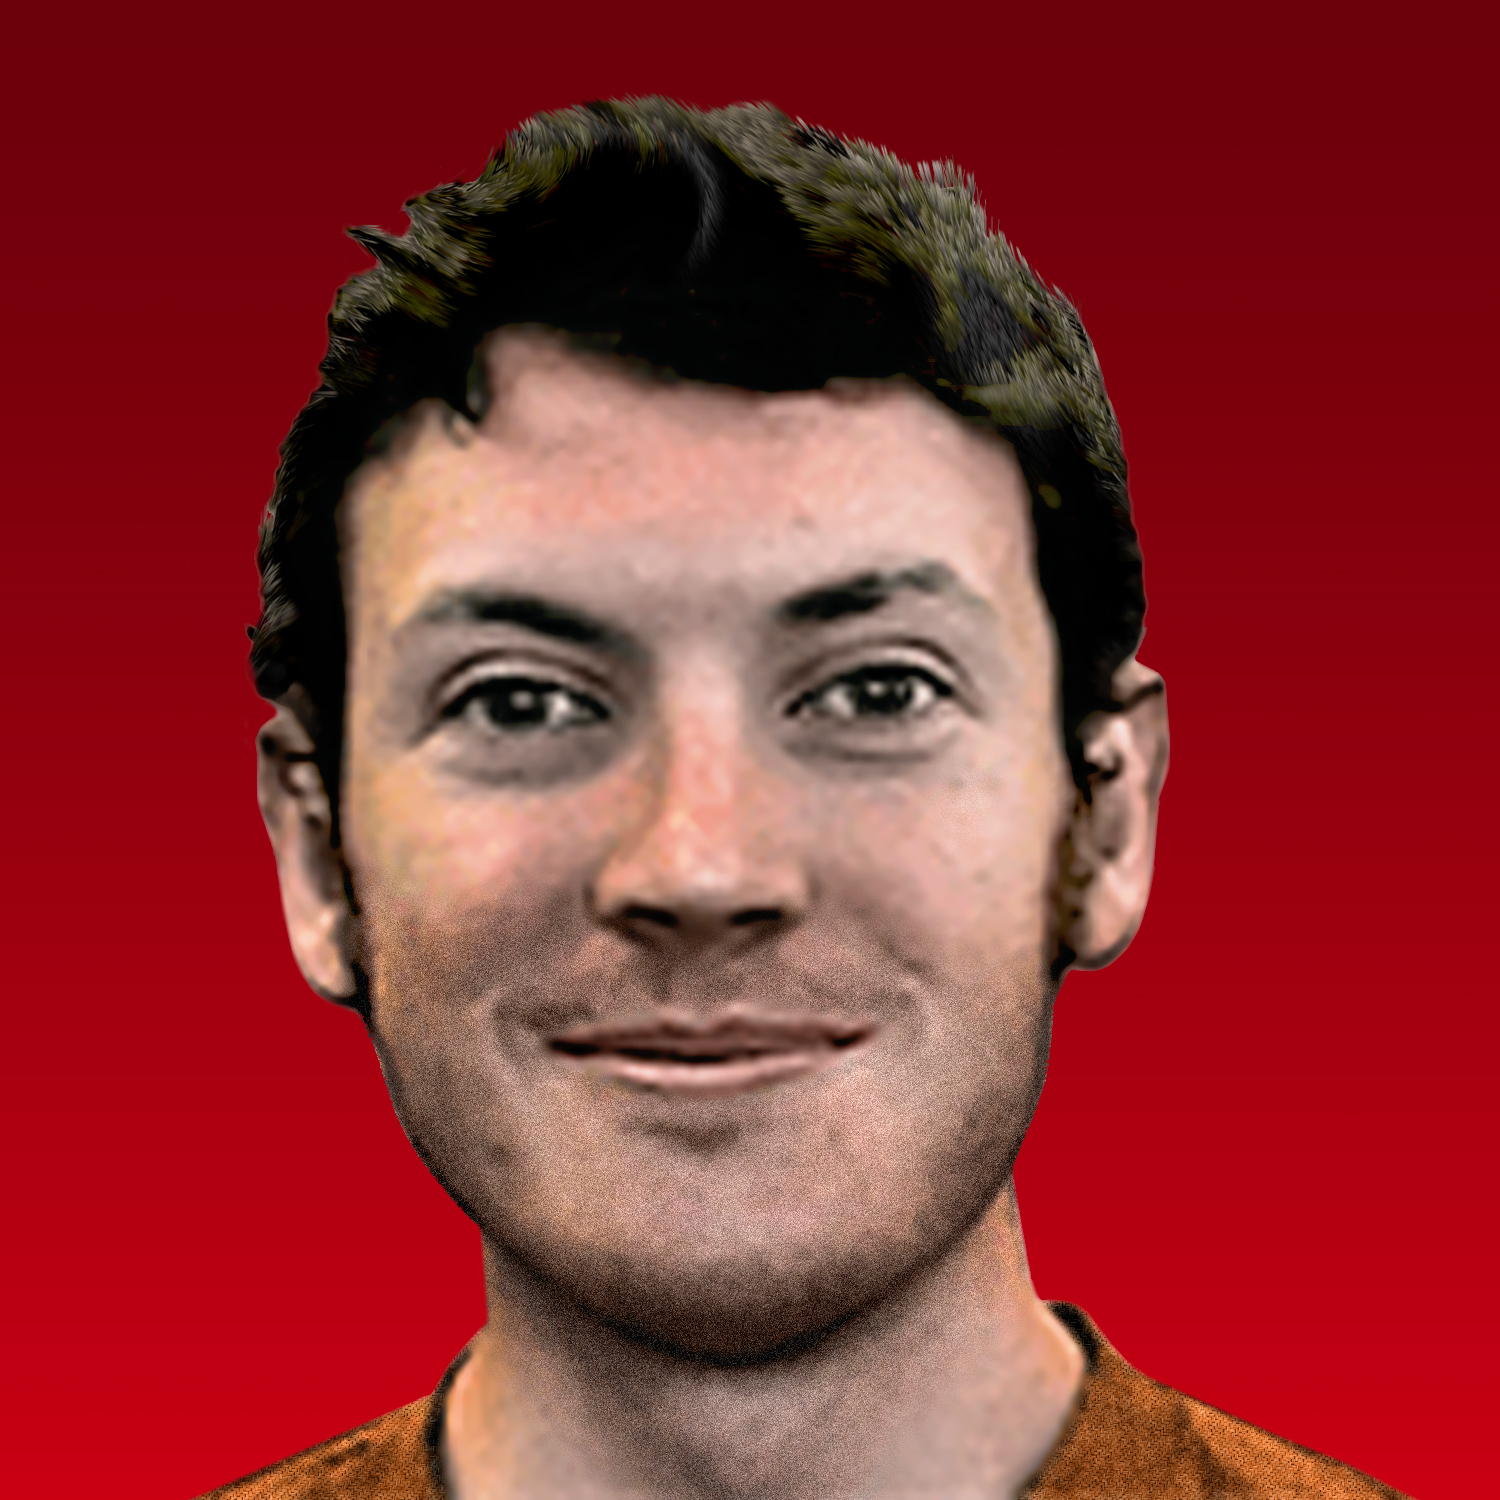 James Holmes, Arrested for Aurora Theater Shooting